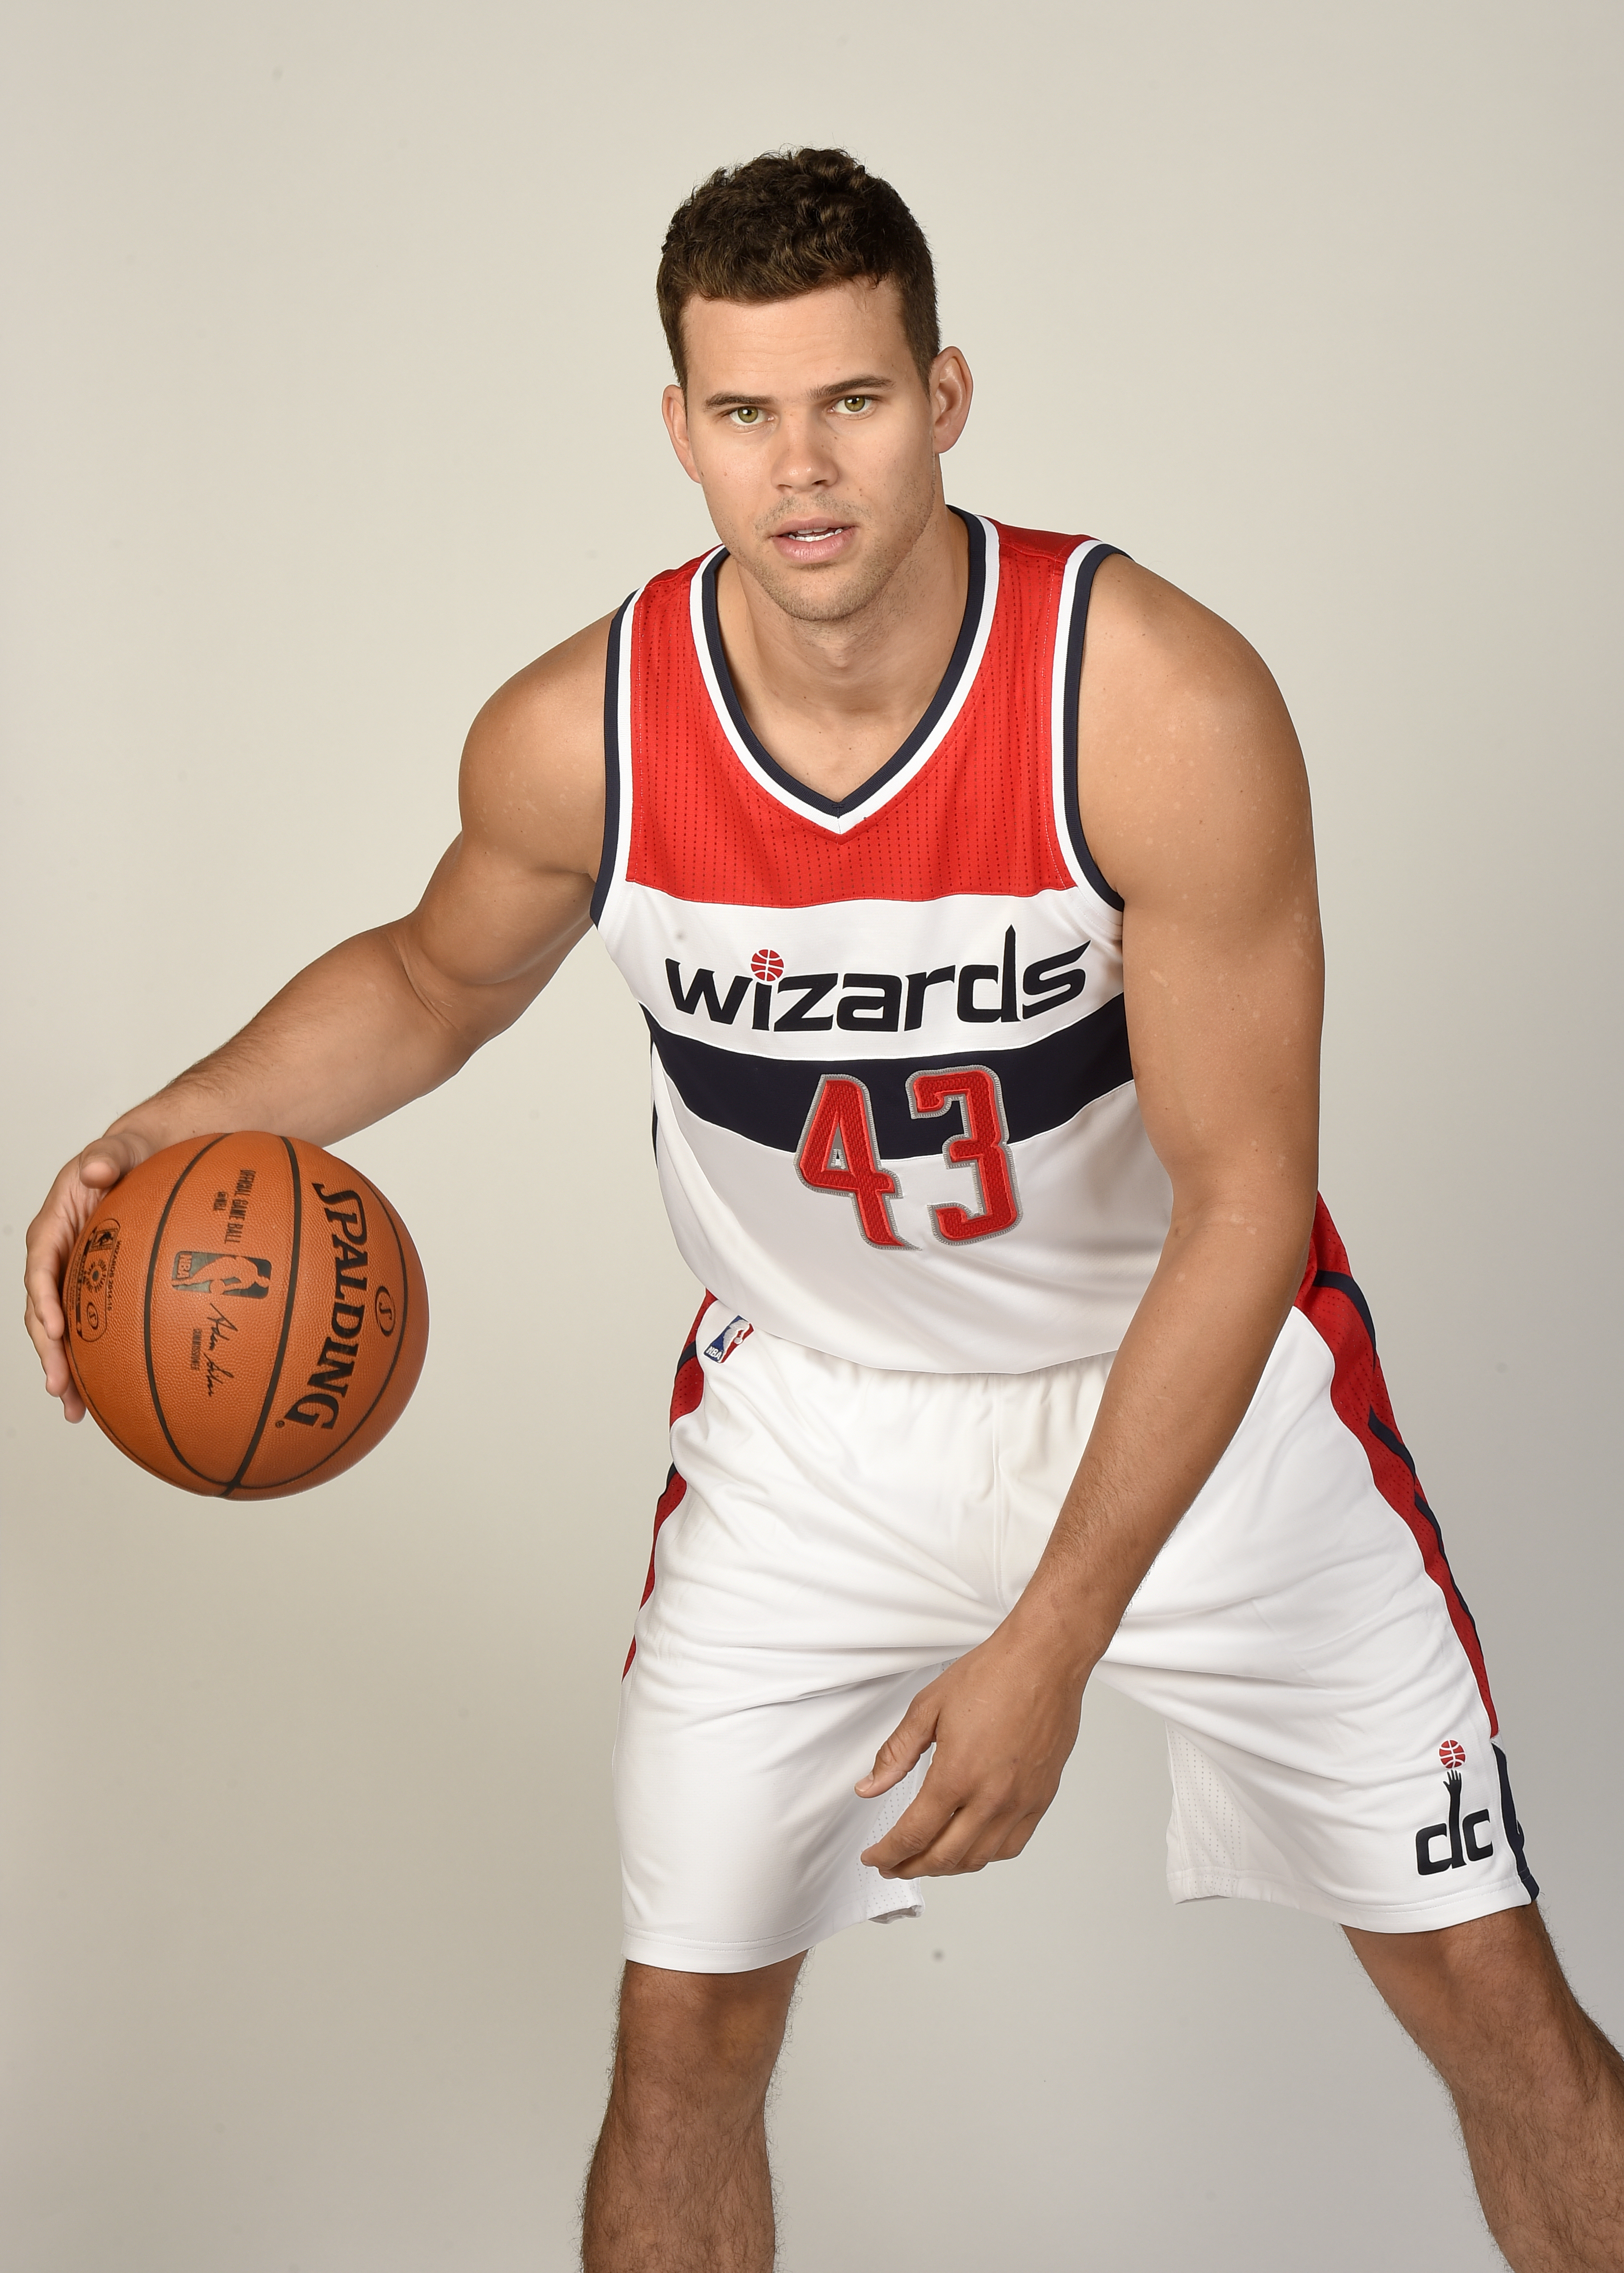 Kris Humphries poses during a media day for the Washington Wizards NBA team in Washington on Sept. 28, 2015.